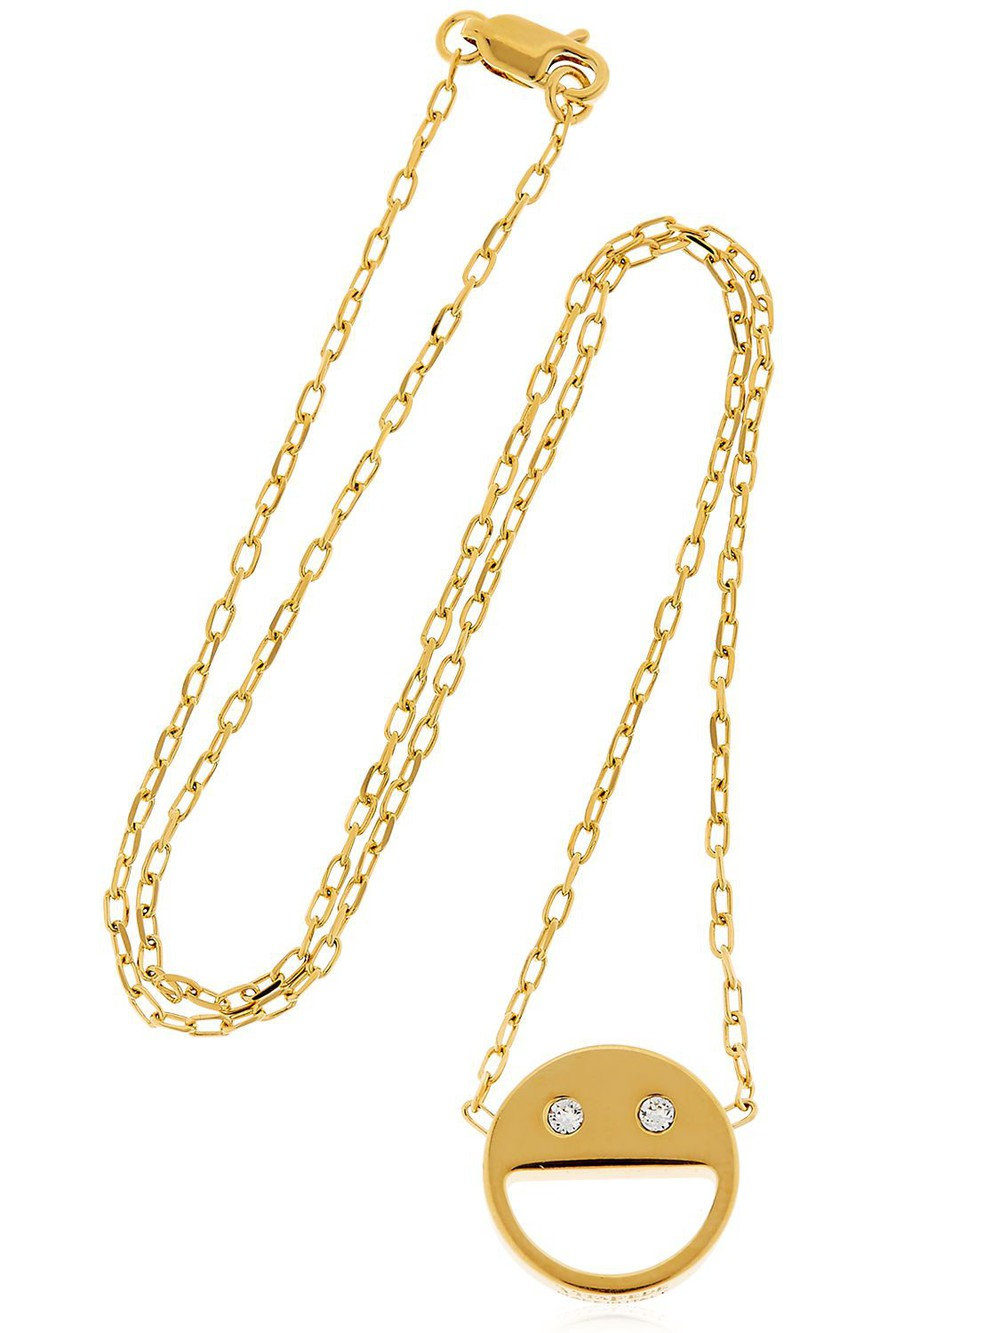 VITA FEDE Sorriso Chain Necklace in gold